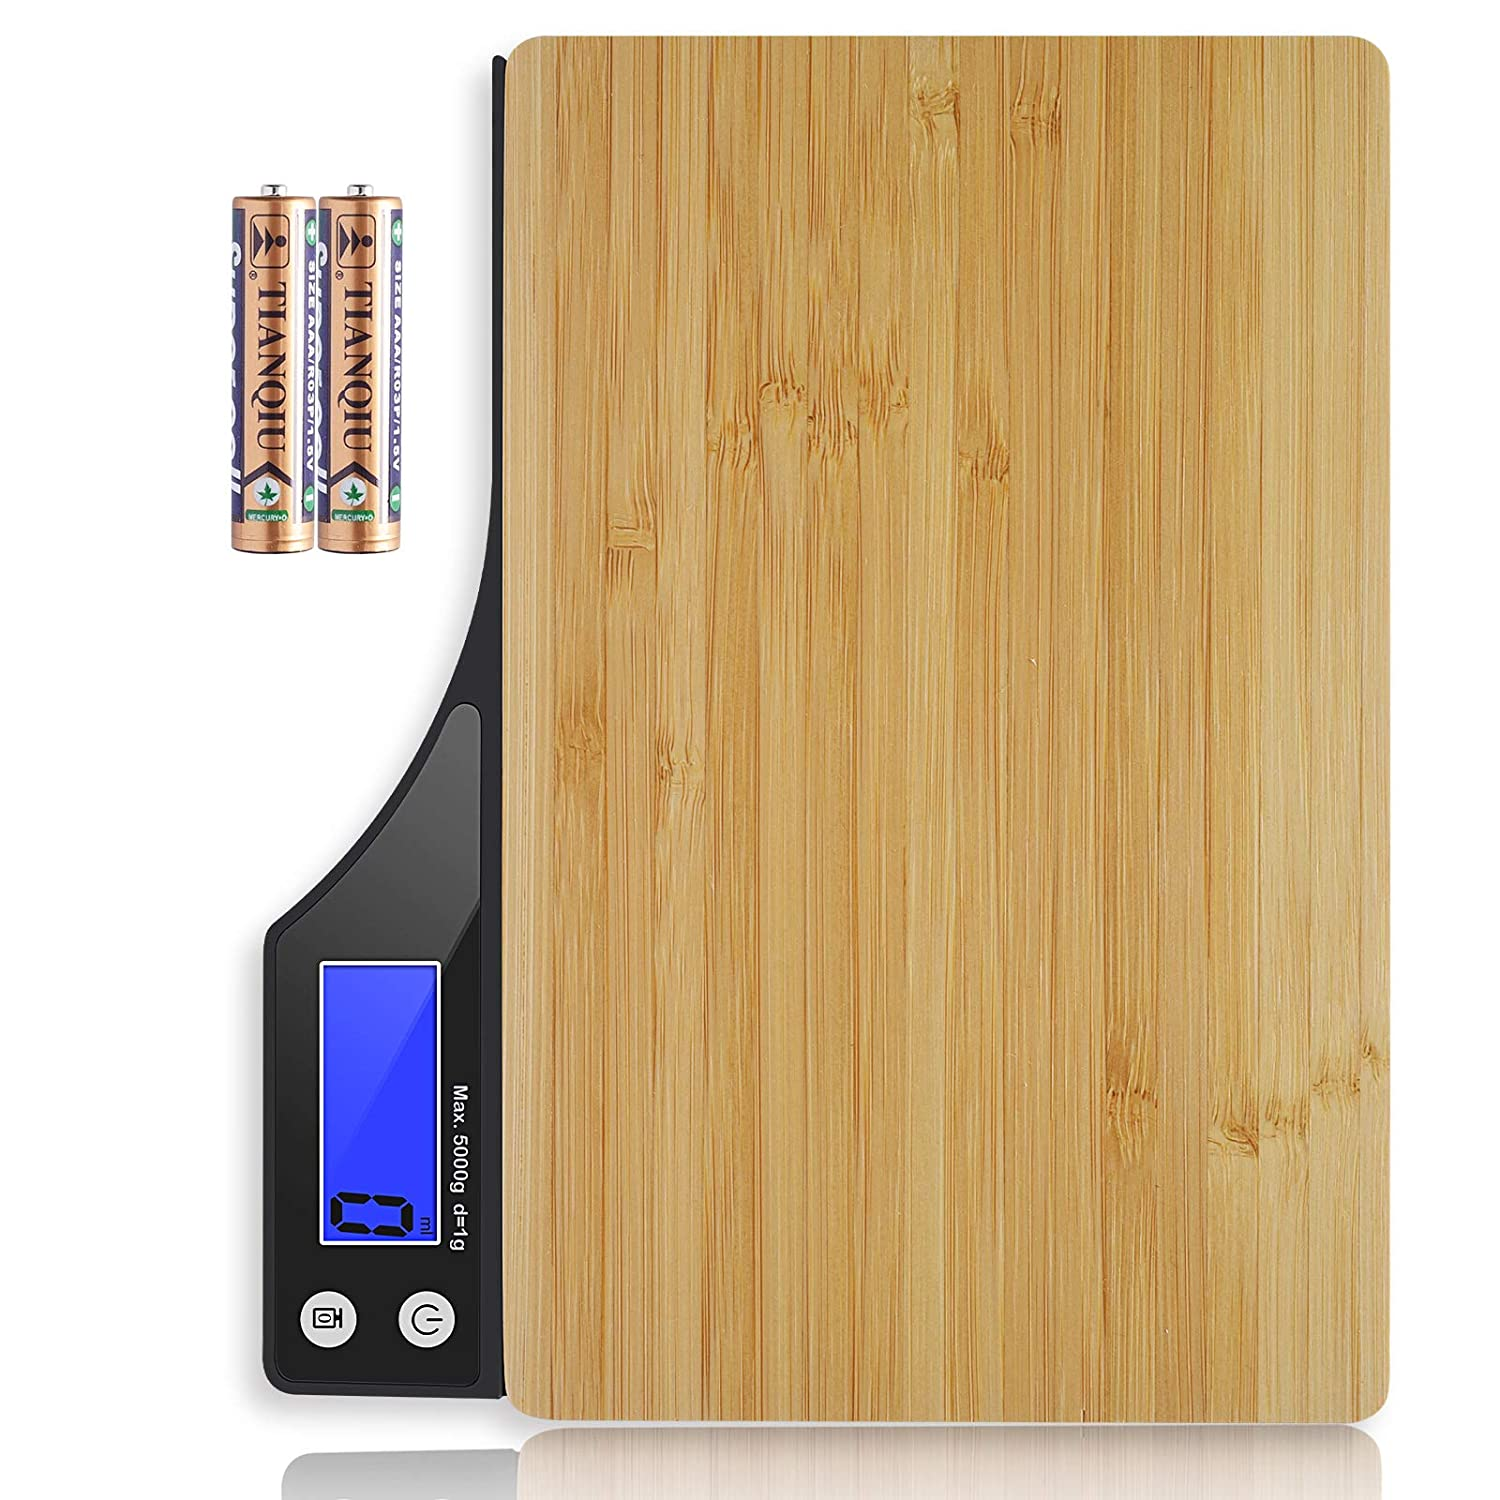 Raindon Food Scale, 11lb Digital Kitchen Scale for Baking and Cooking, 1g/0.1oz Precise Graduation, Weight Grams and Oz, Bamboo (Batteries Included)